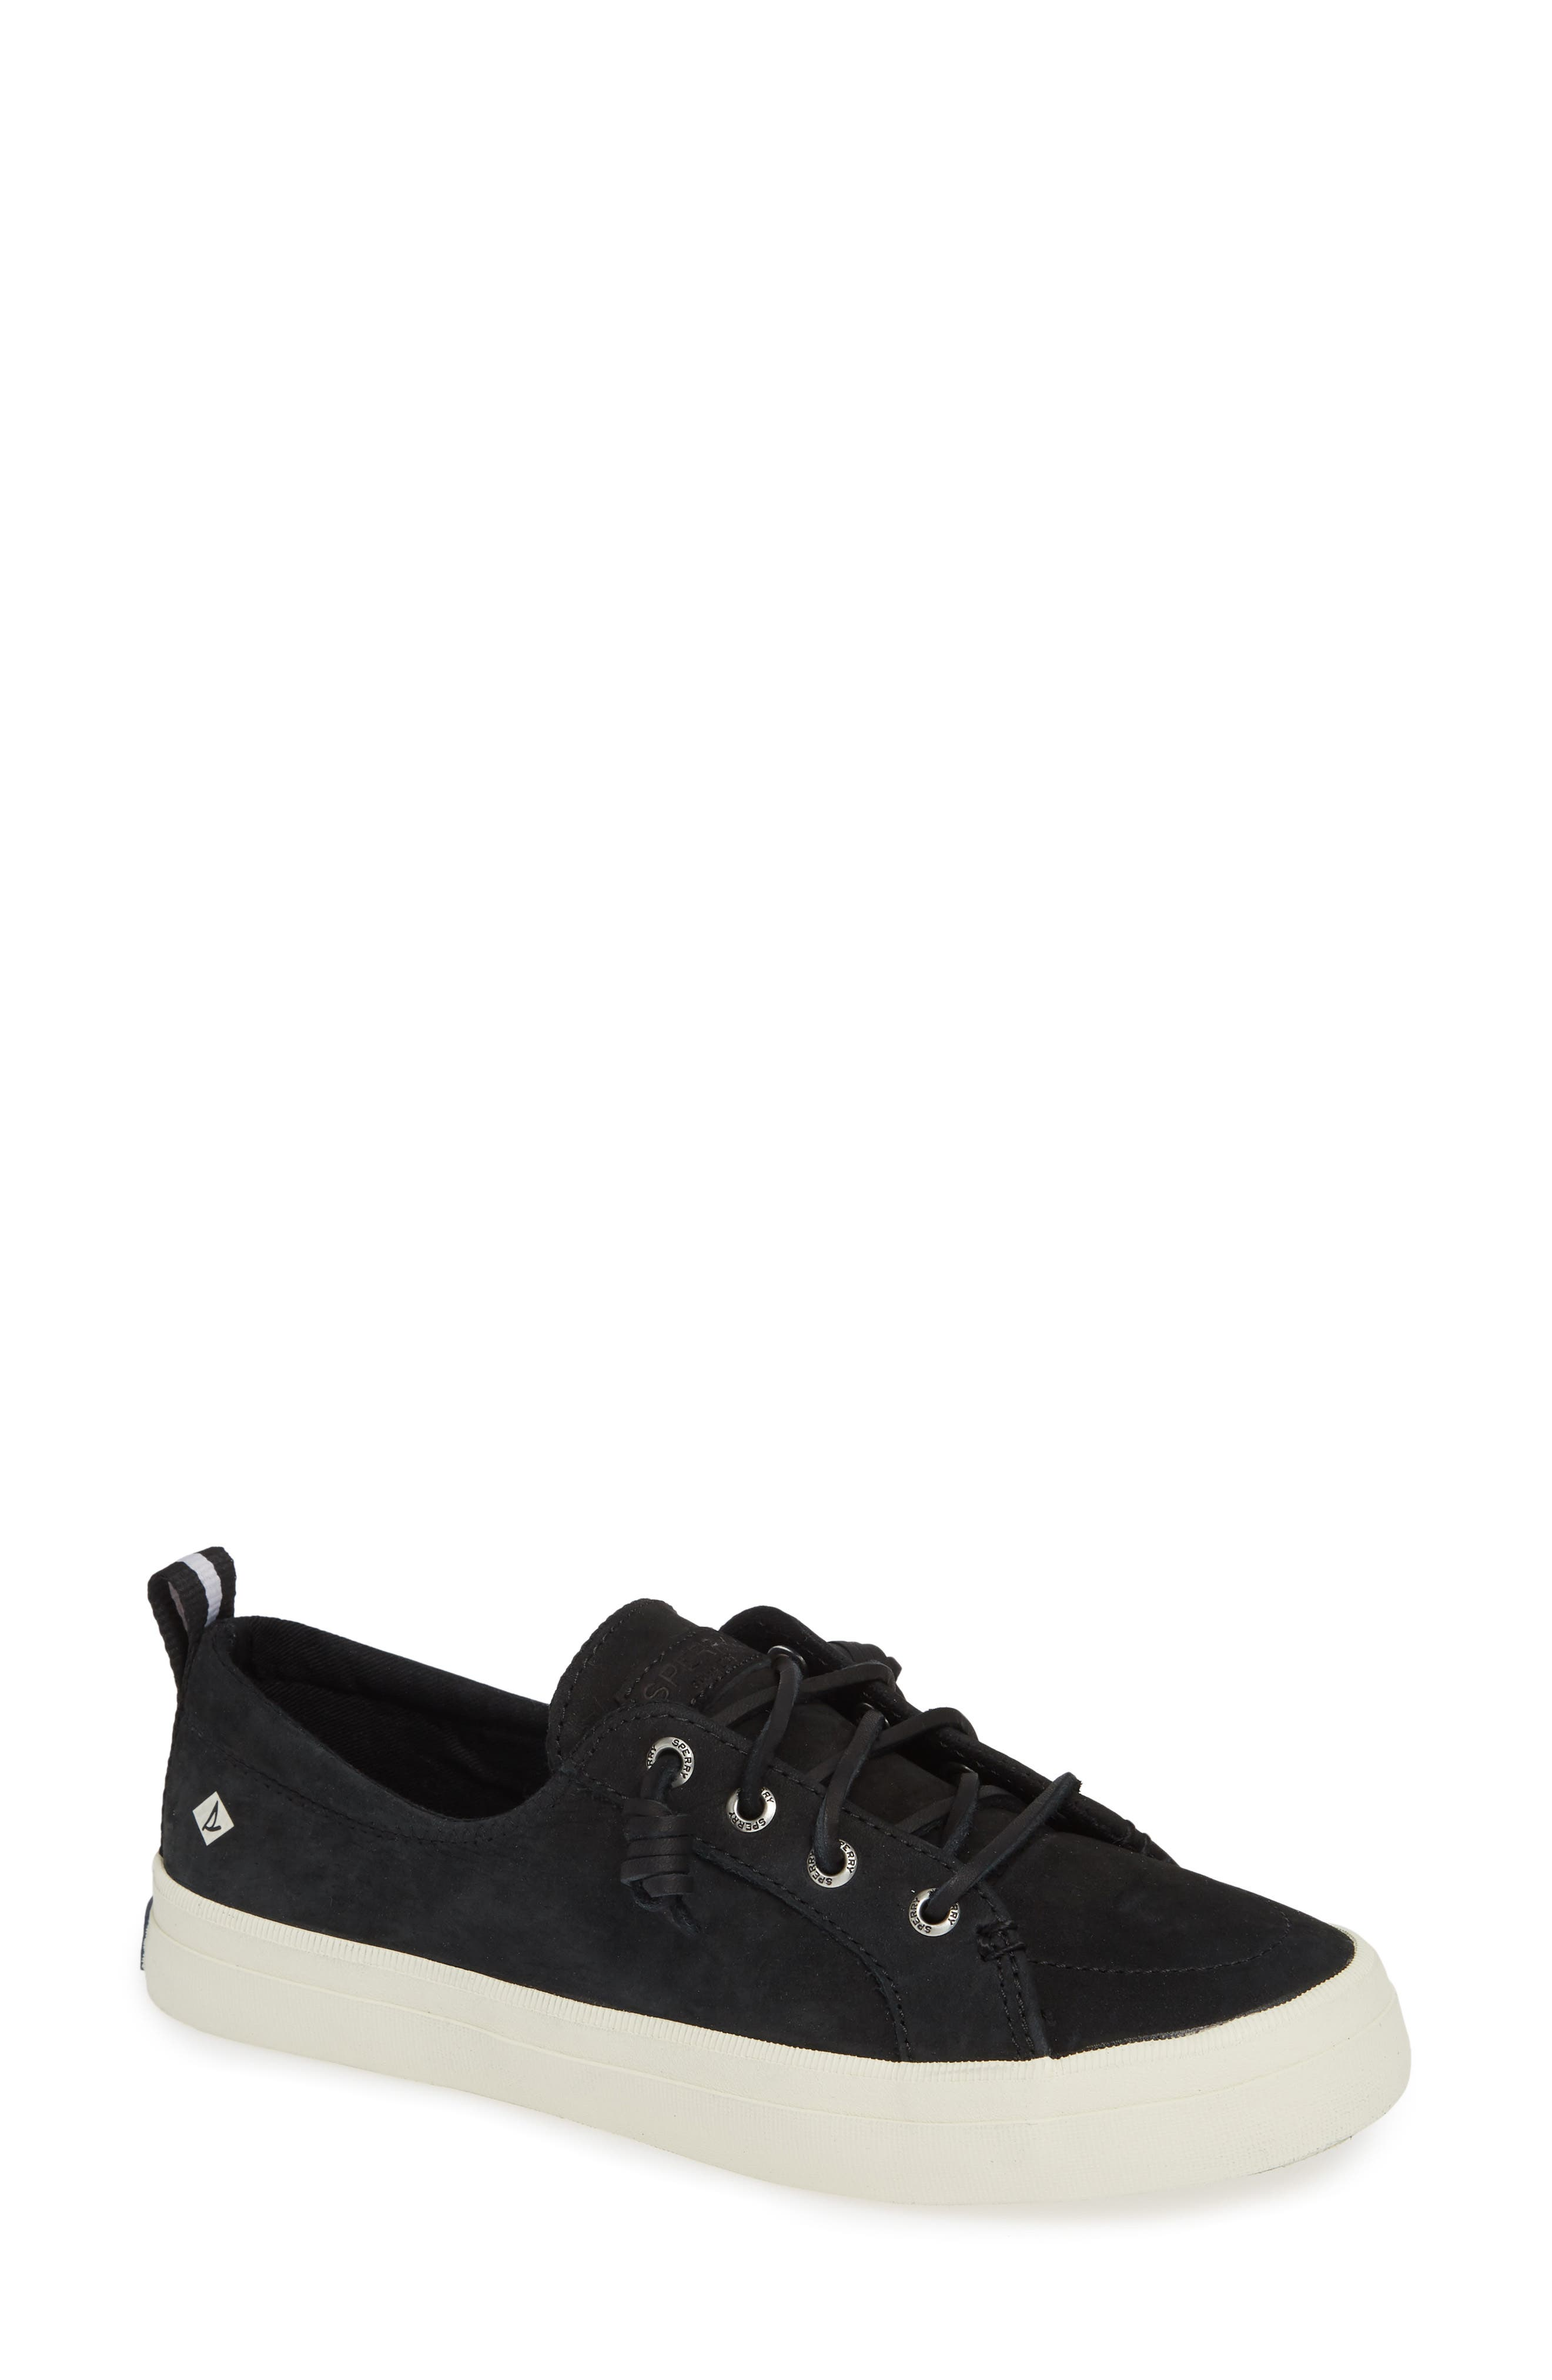 SPERRY Crest Vibe Sneaker, Main, color, 001